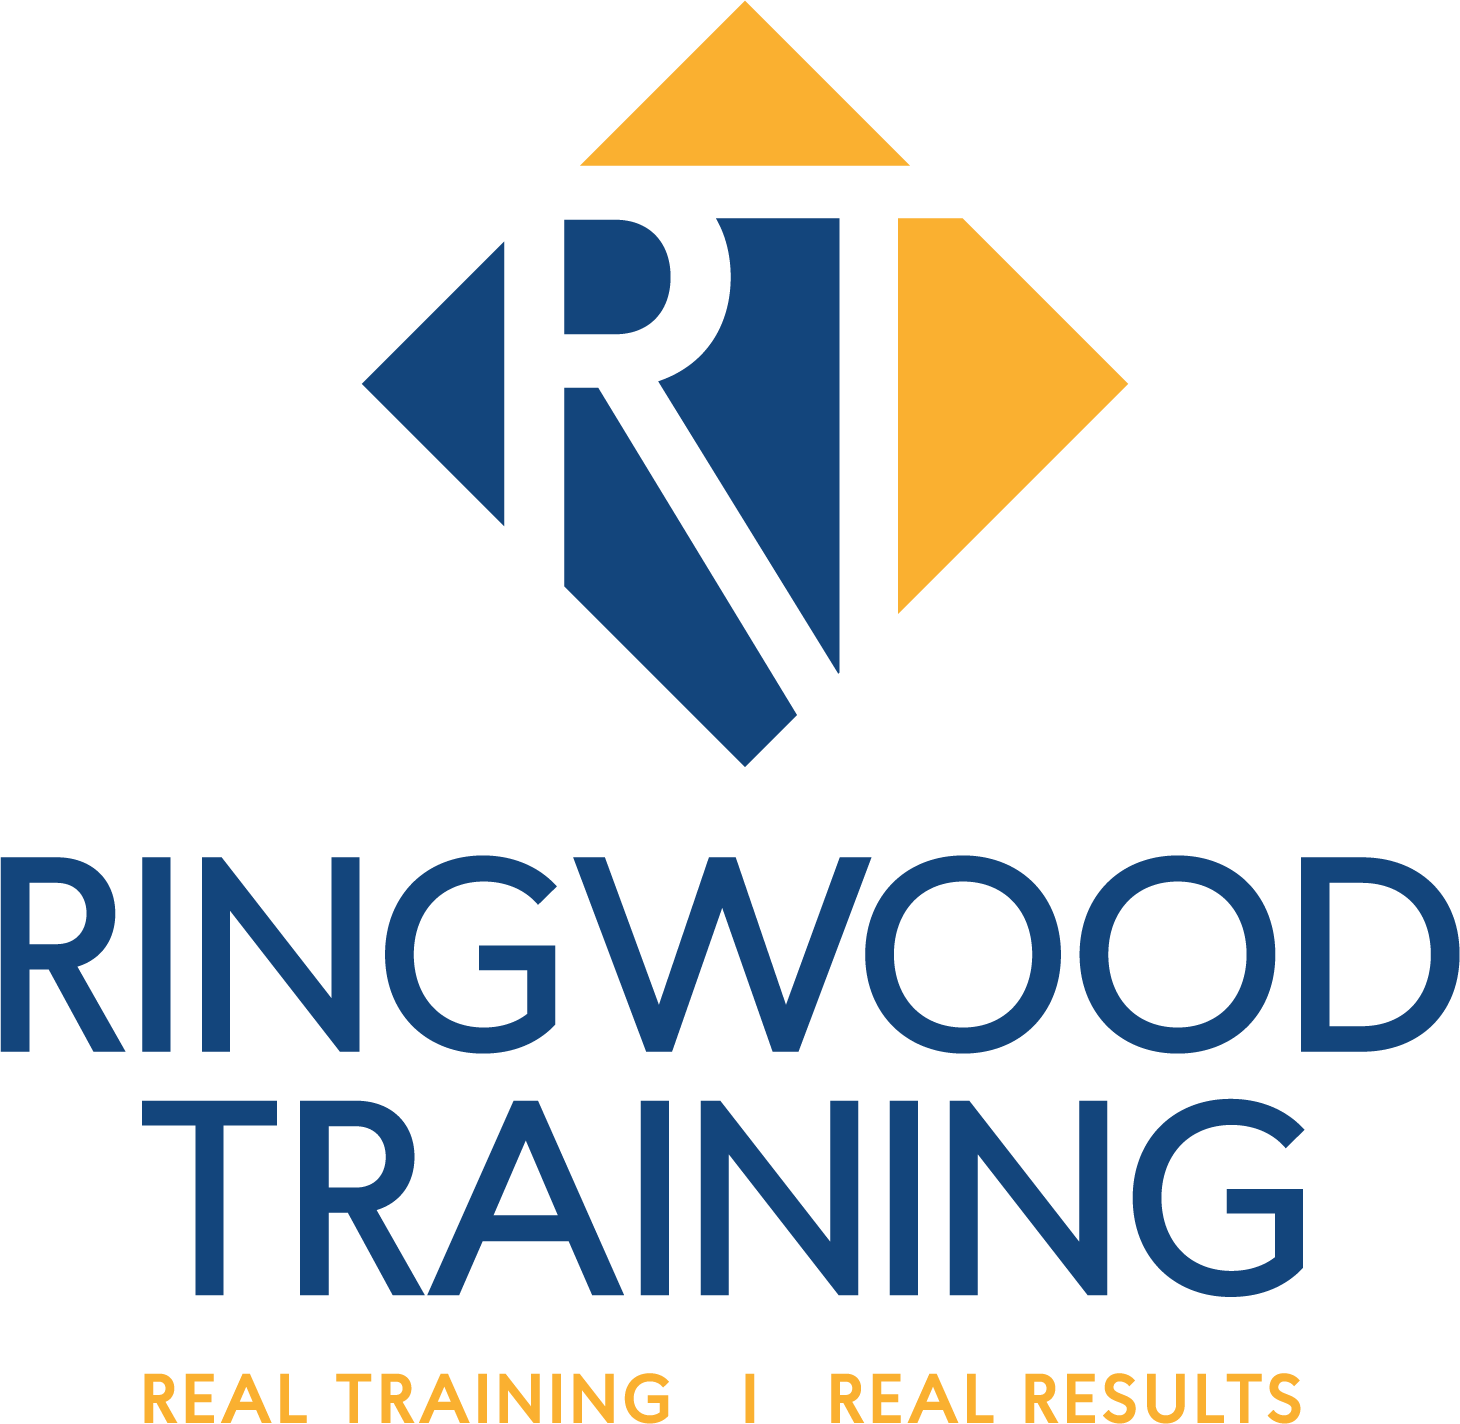 Uncategorized Archives - Ringwood Training - RT